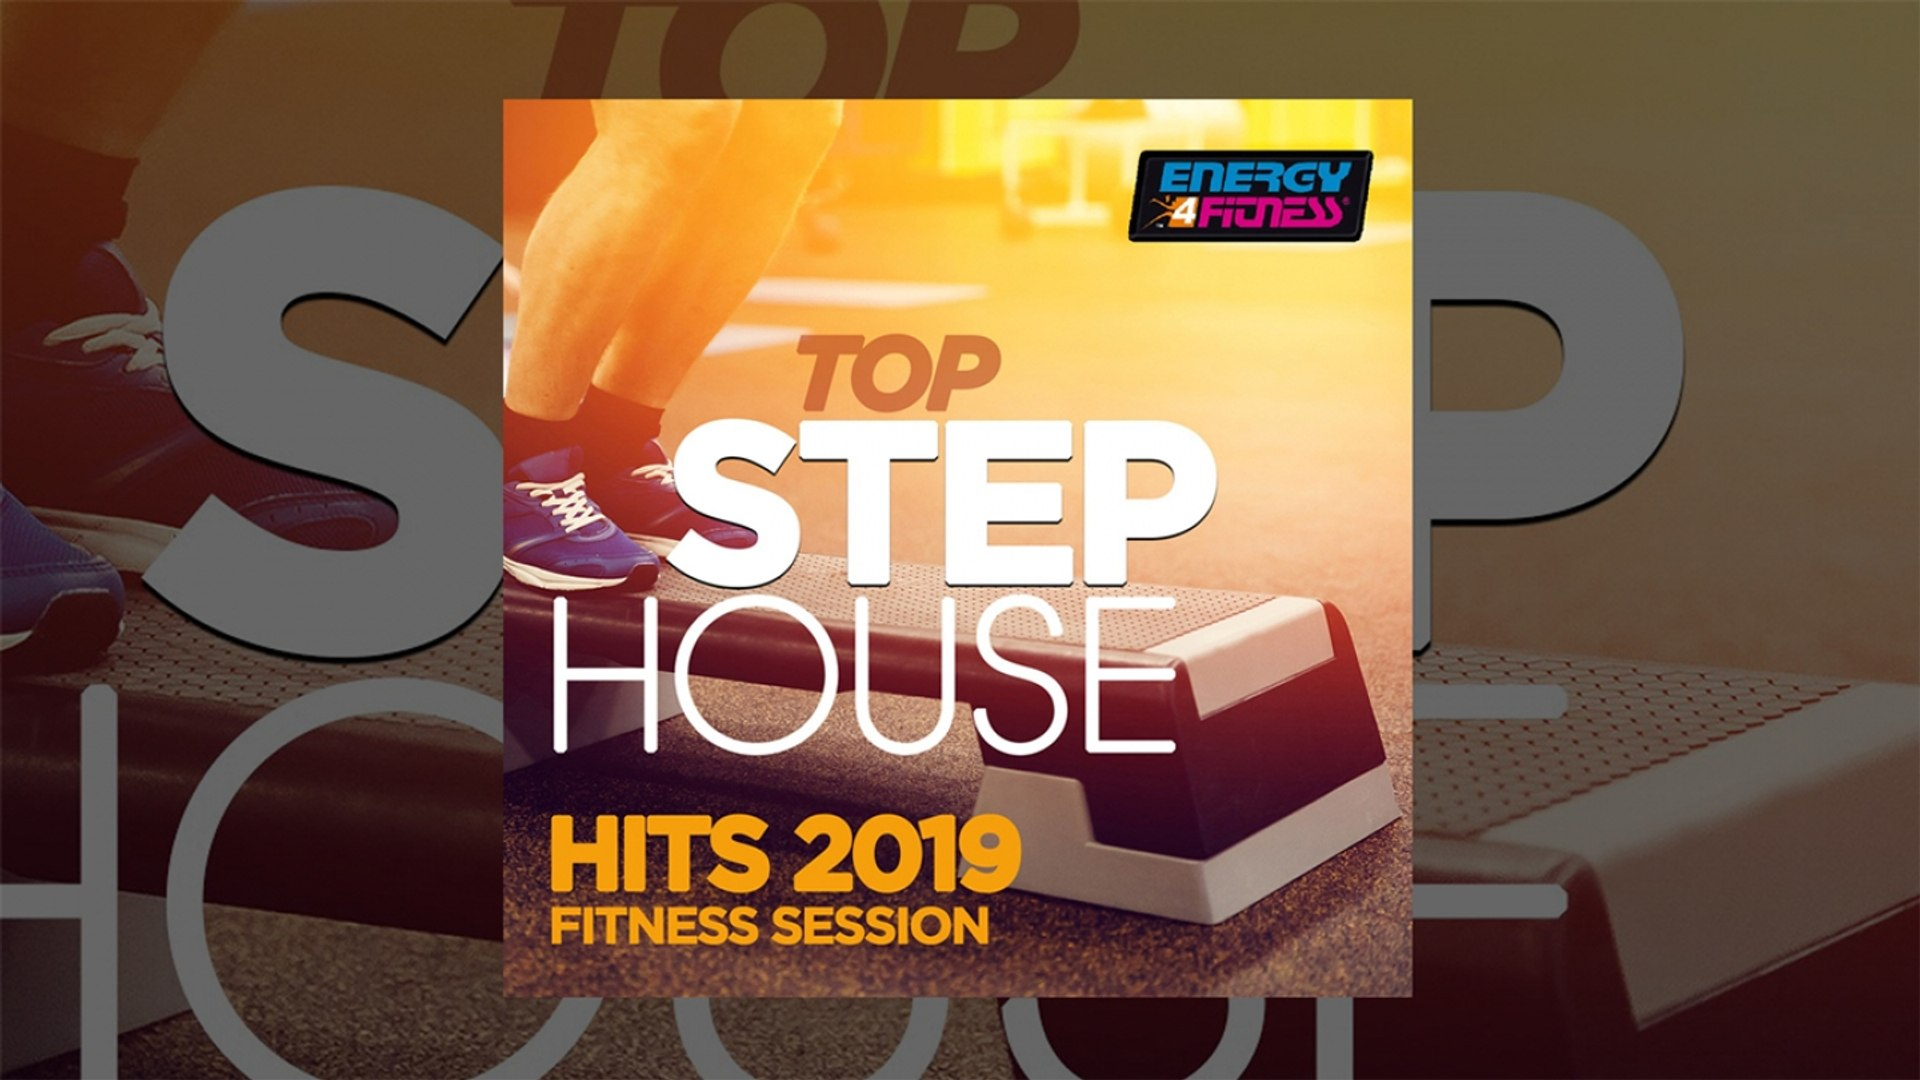 E4F - Top Step House Hits 2019 Fitness Session - Fitness & Music 2019